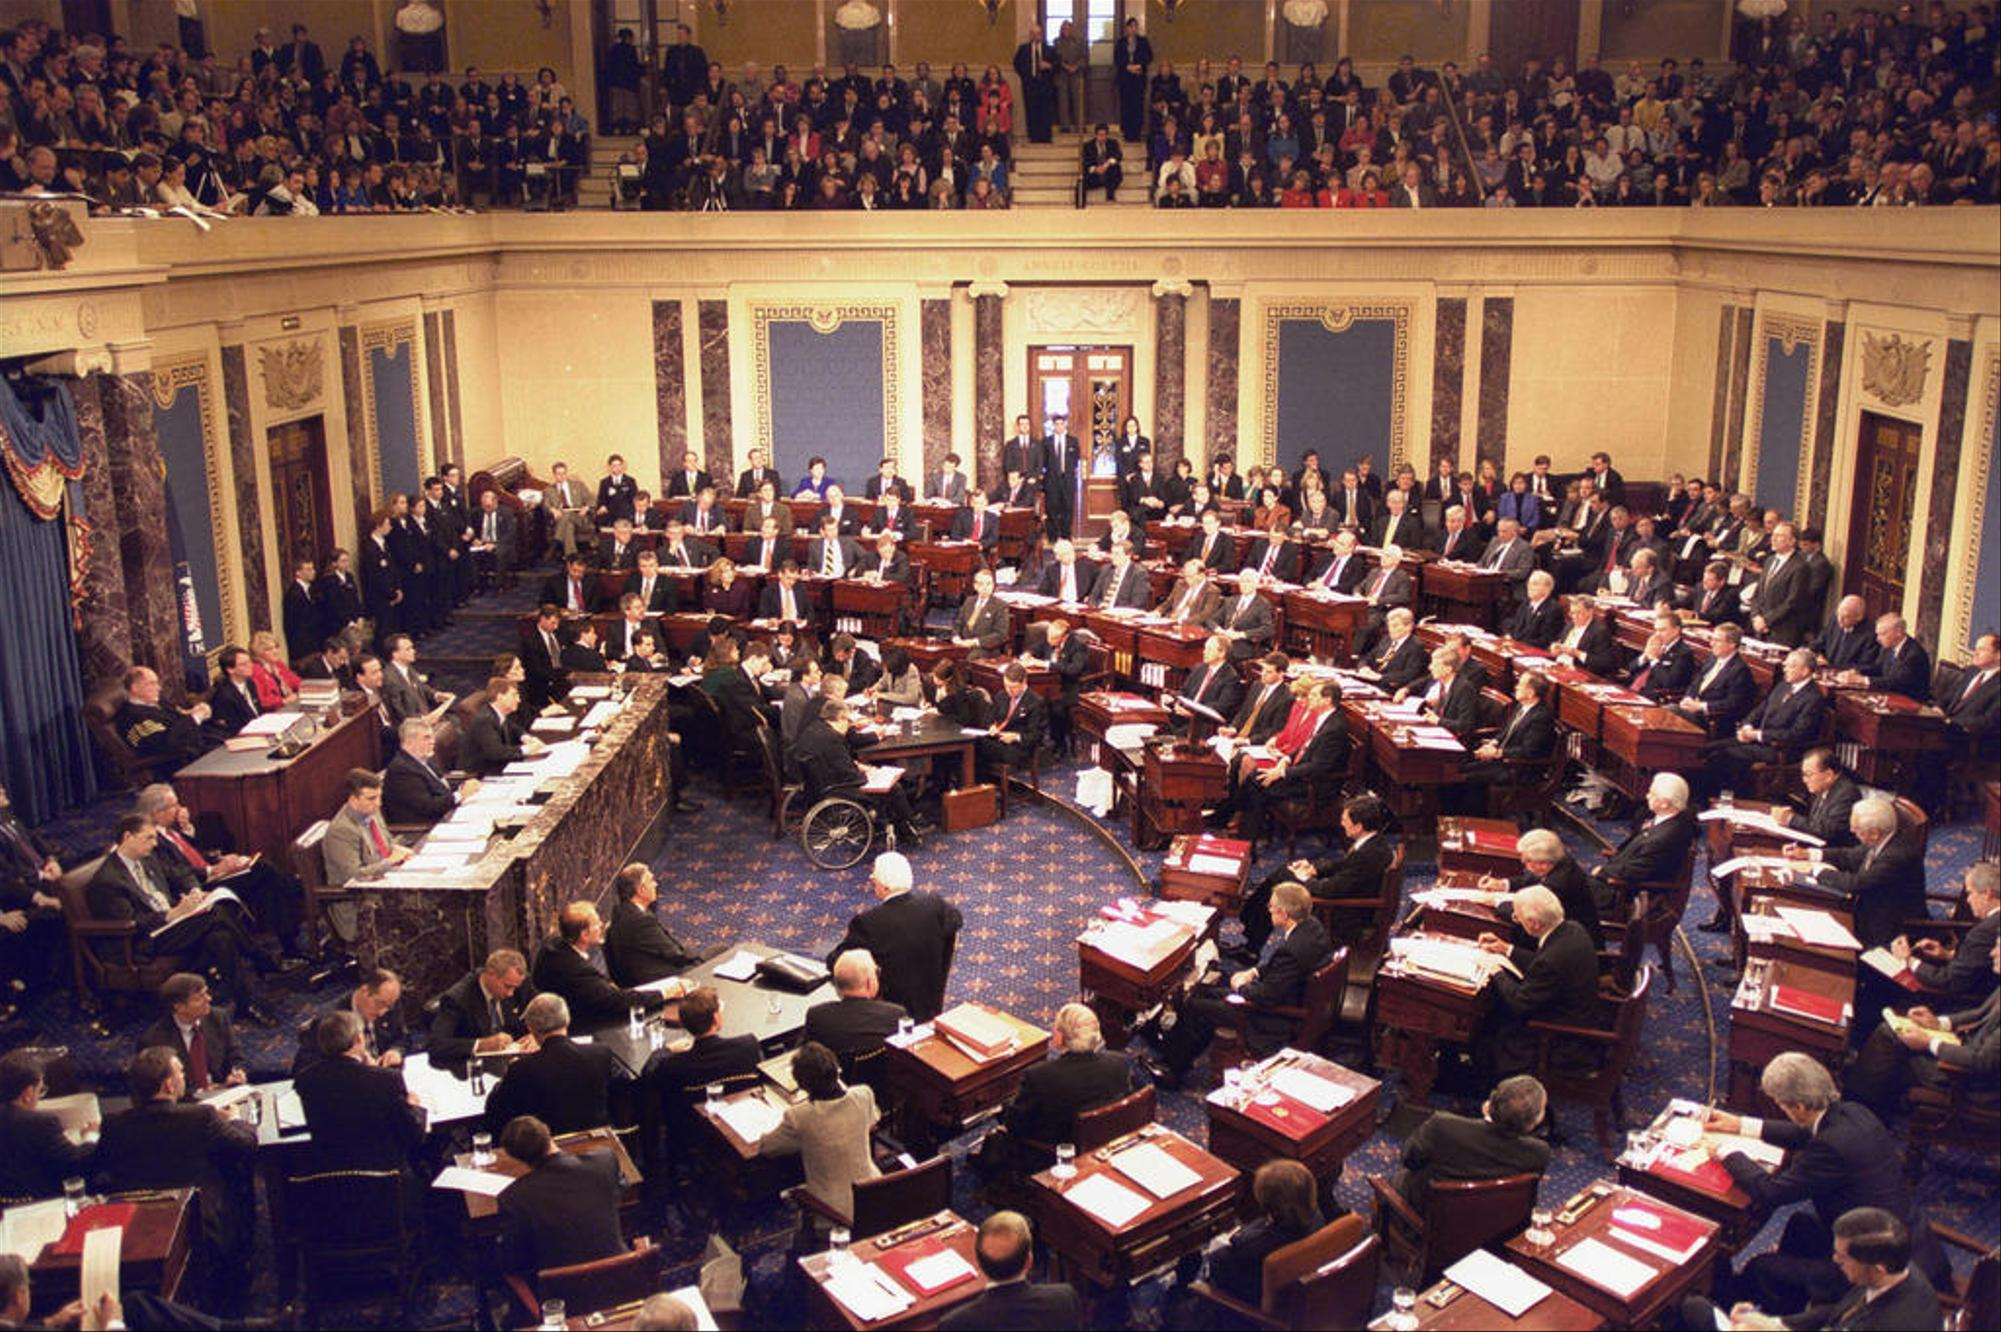 File:Senate in session.jpg